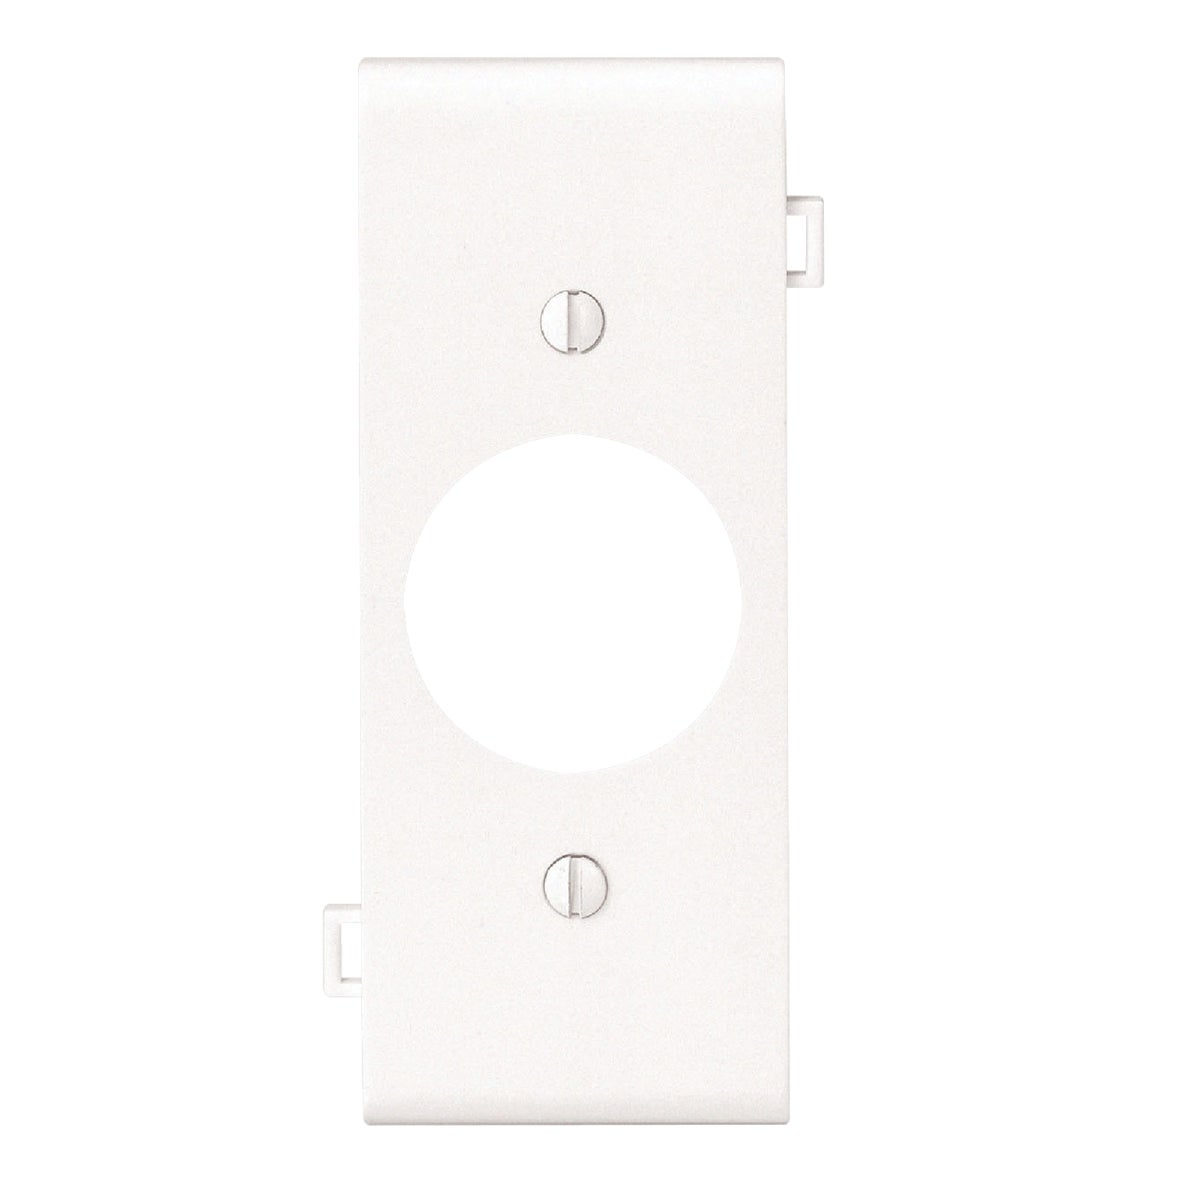 WHT SINGLE CENTER PLATE - PSC7W by Leviton Mfg Co